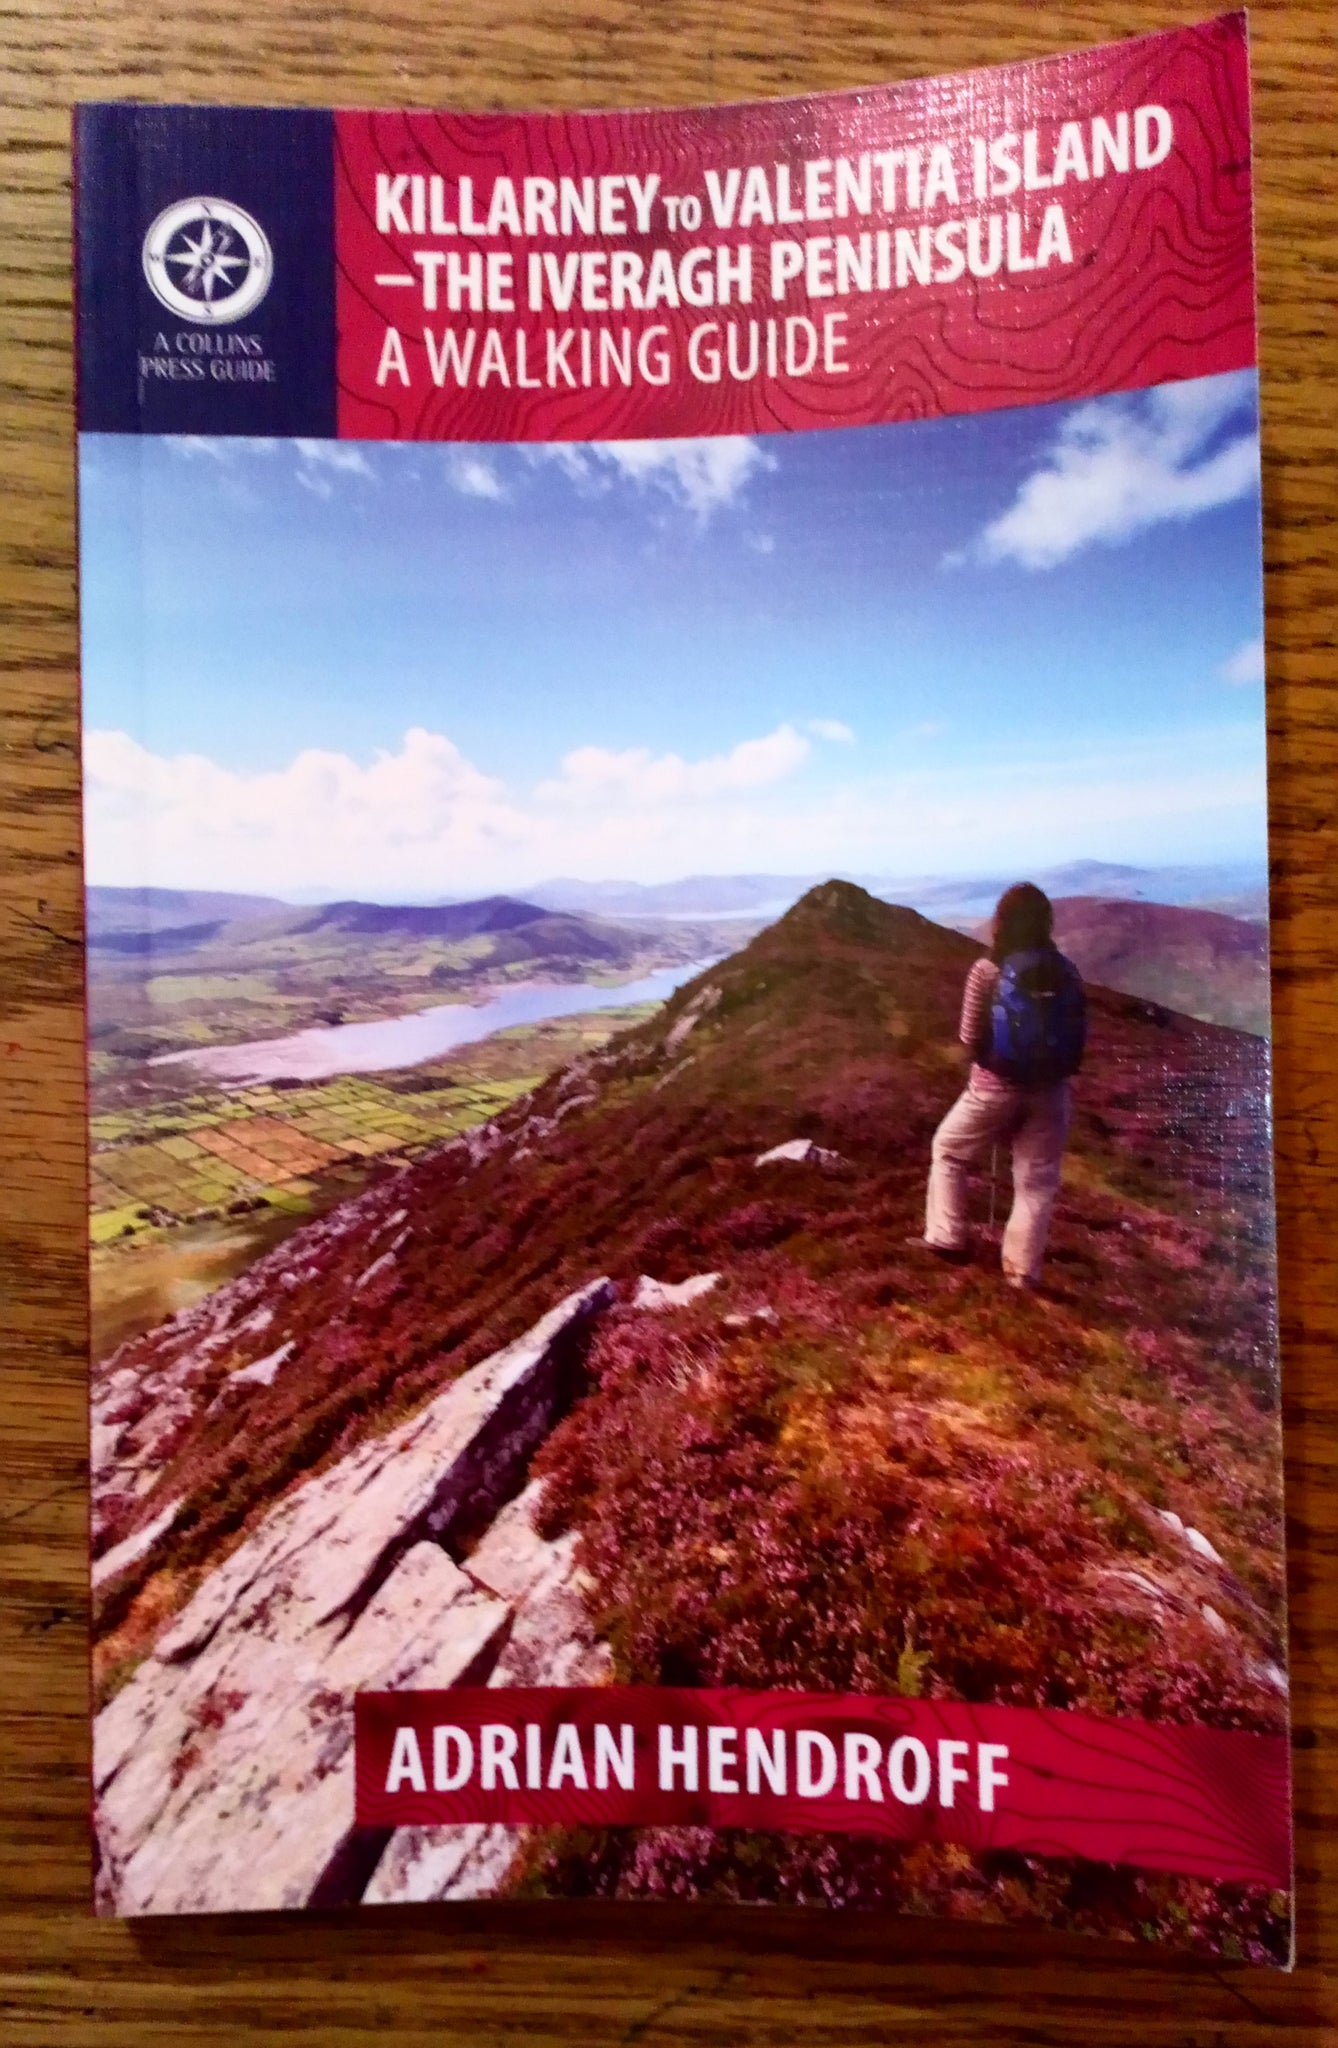 Walking Guide - Killarney to Valentia Ireland - The Iveragh Perninsula